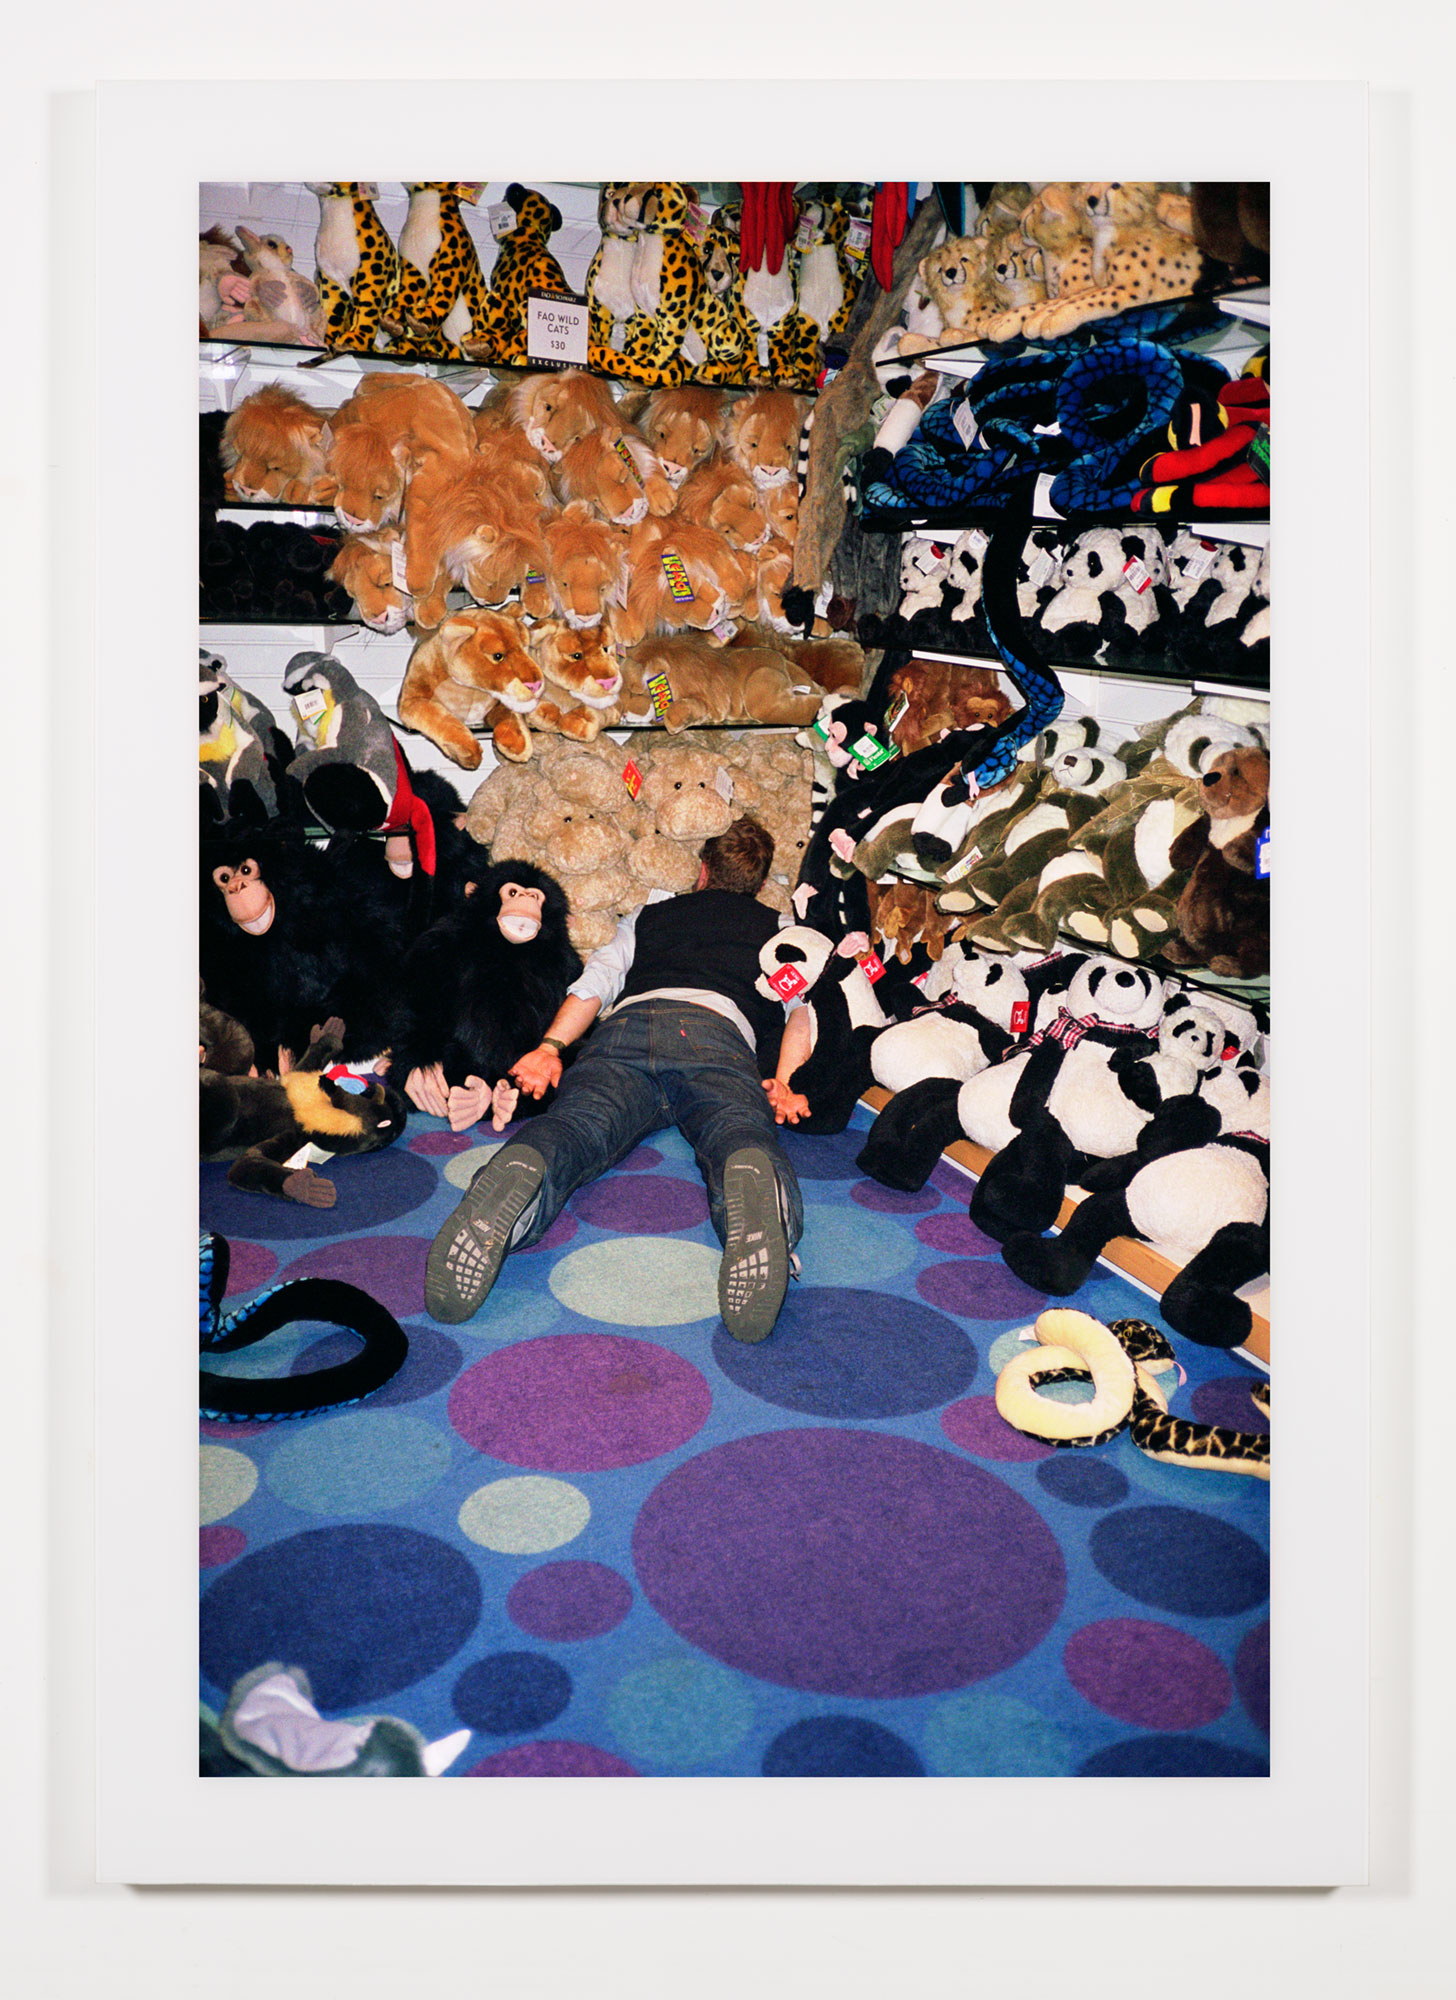 The Phenomenology of Shopping (FAO Schwartz, The Grove, Los Angeles, CA)    2002   Chromogenic print  68 x 47 3/4 inches